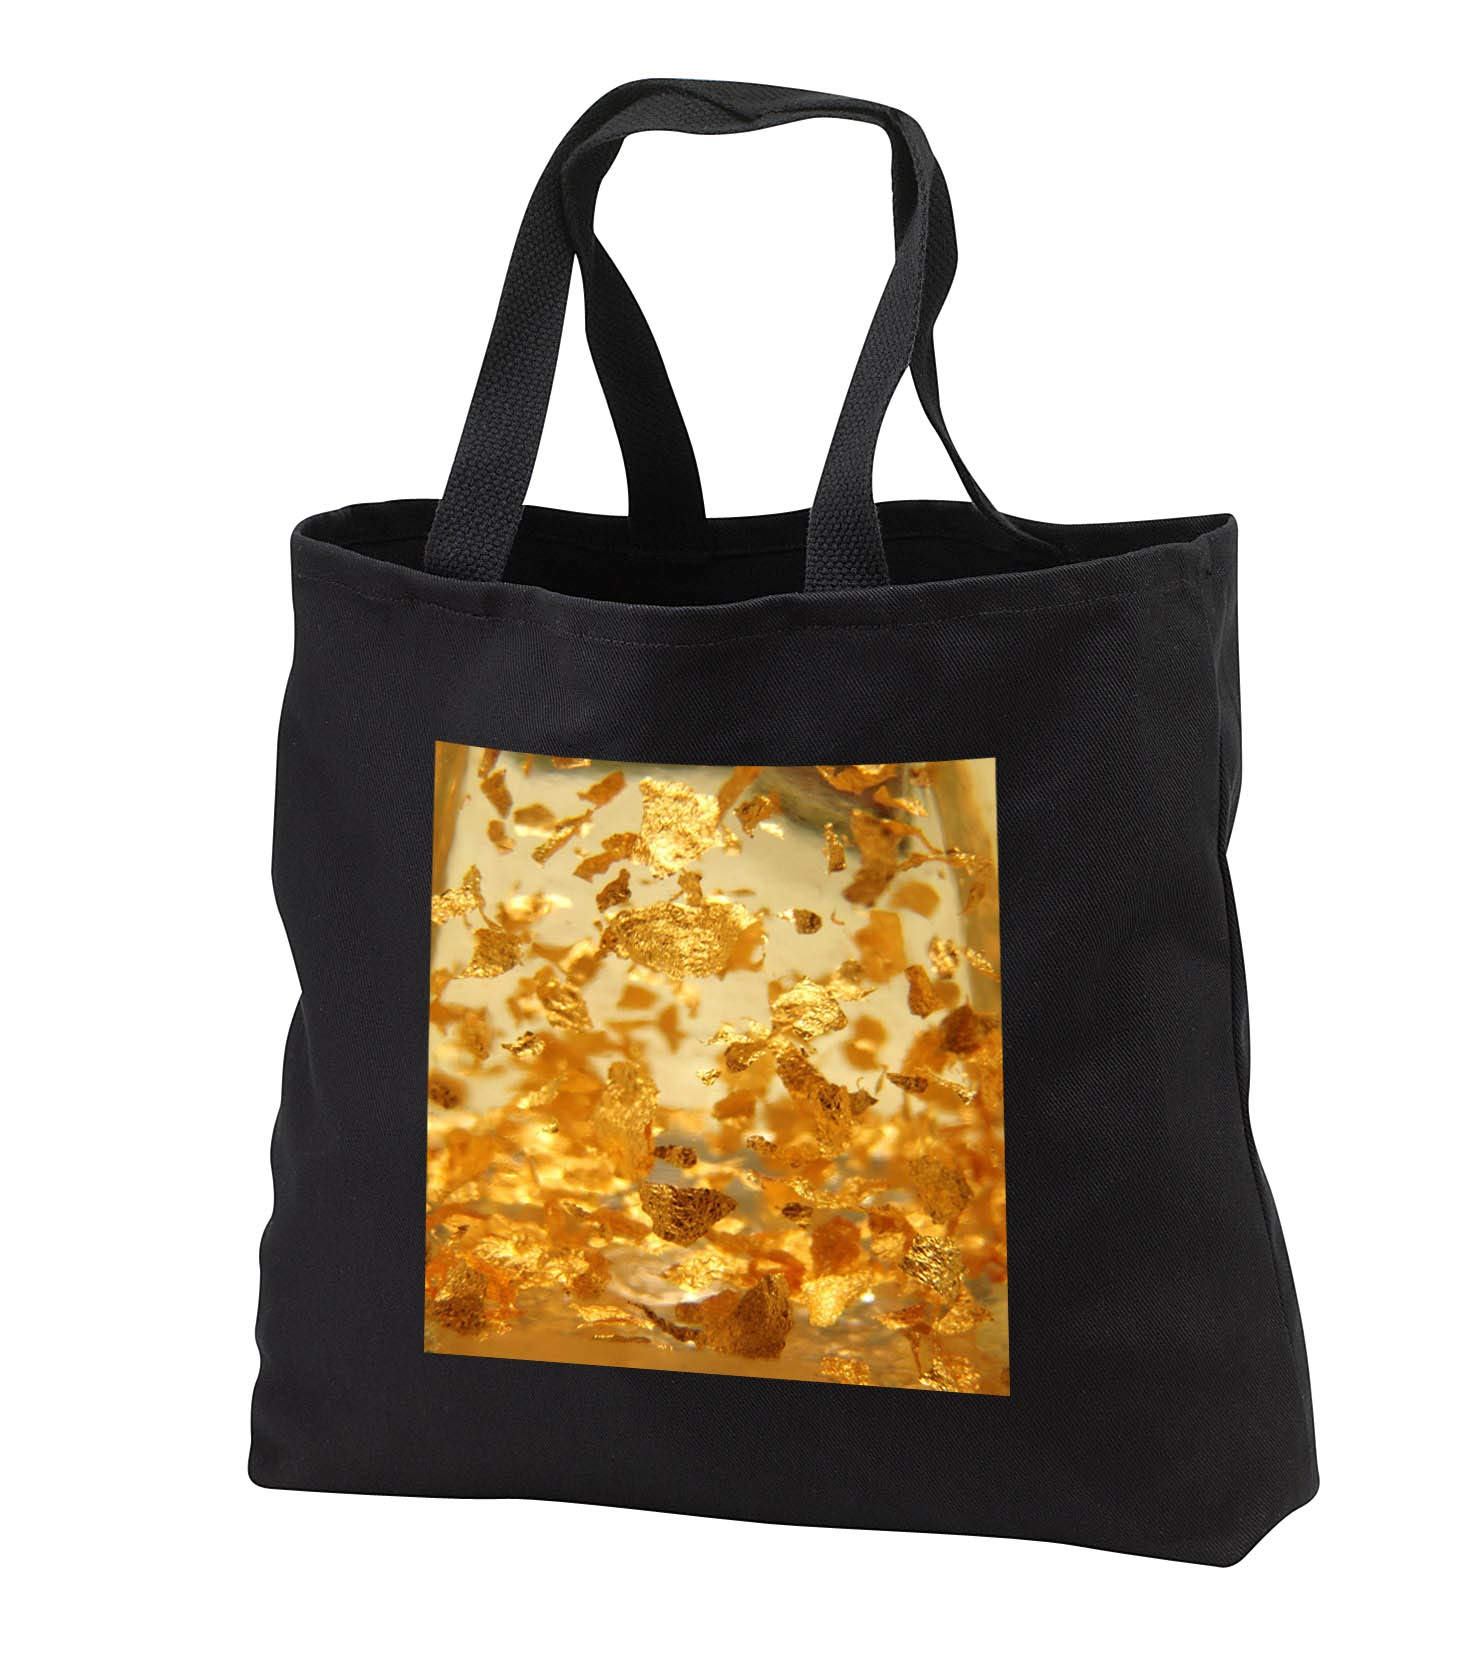 Lens Art by Florene - Everything Gold - Image of Macro Gold Flakes Float Under Glass - Tote Bags - Black Tote Bag JUMBO 20w x 15h x 5d (tb_291021_3)